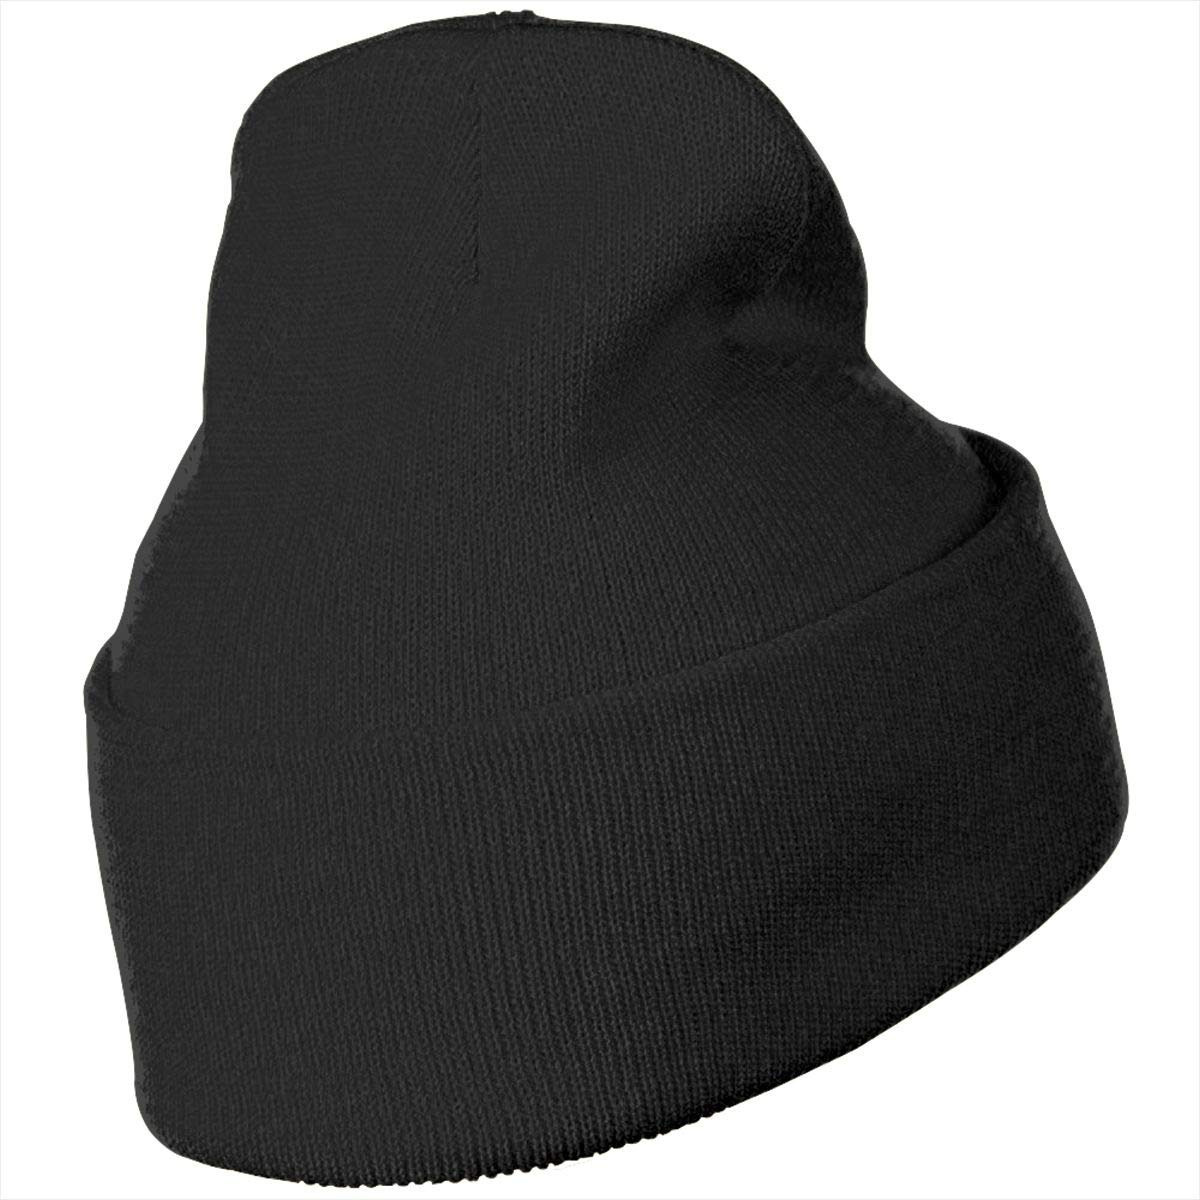 WHOO93@Y Mens Womens 100/% Acrylic Knit Hat Cap Fashion Dachshund Fashion Ski Cap